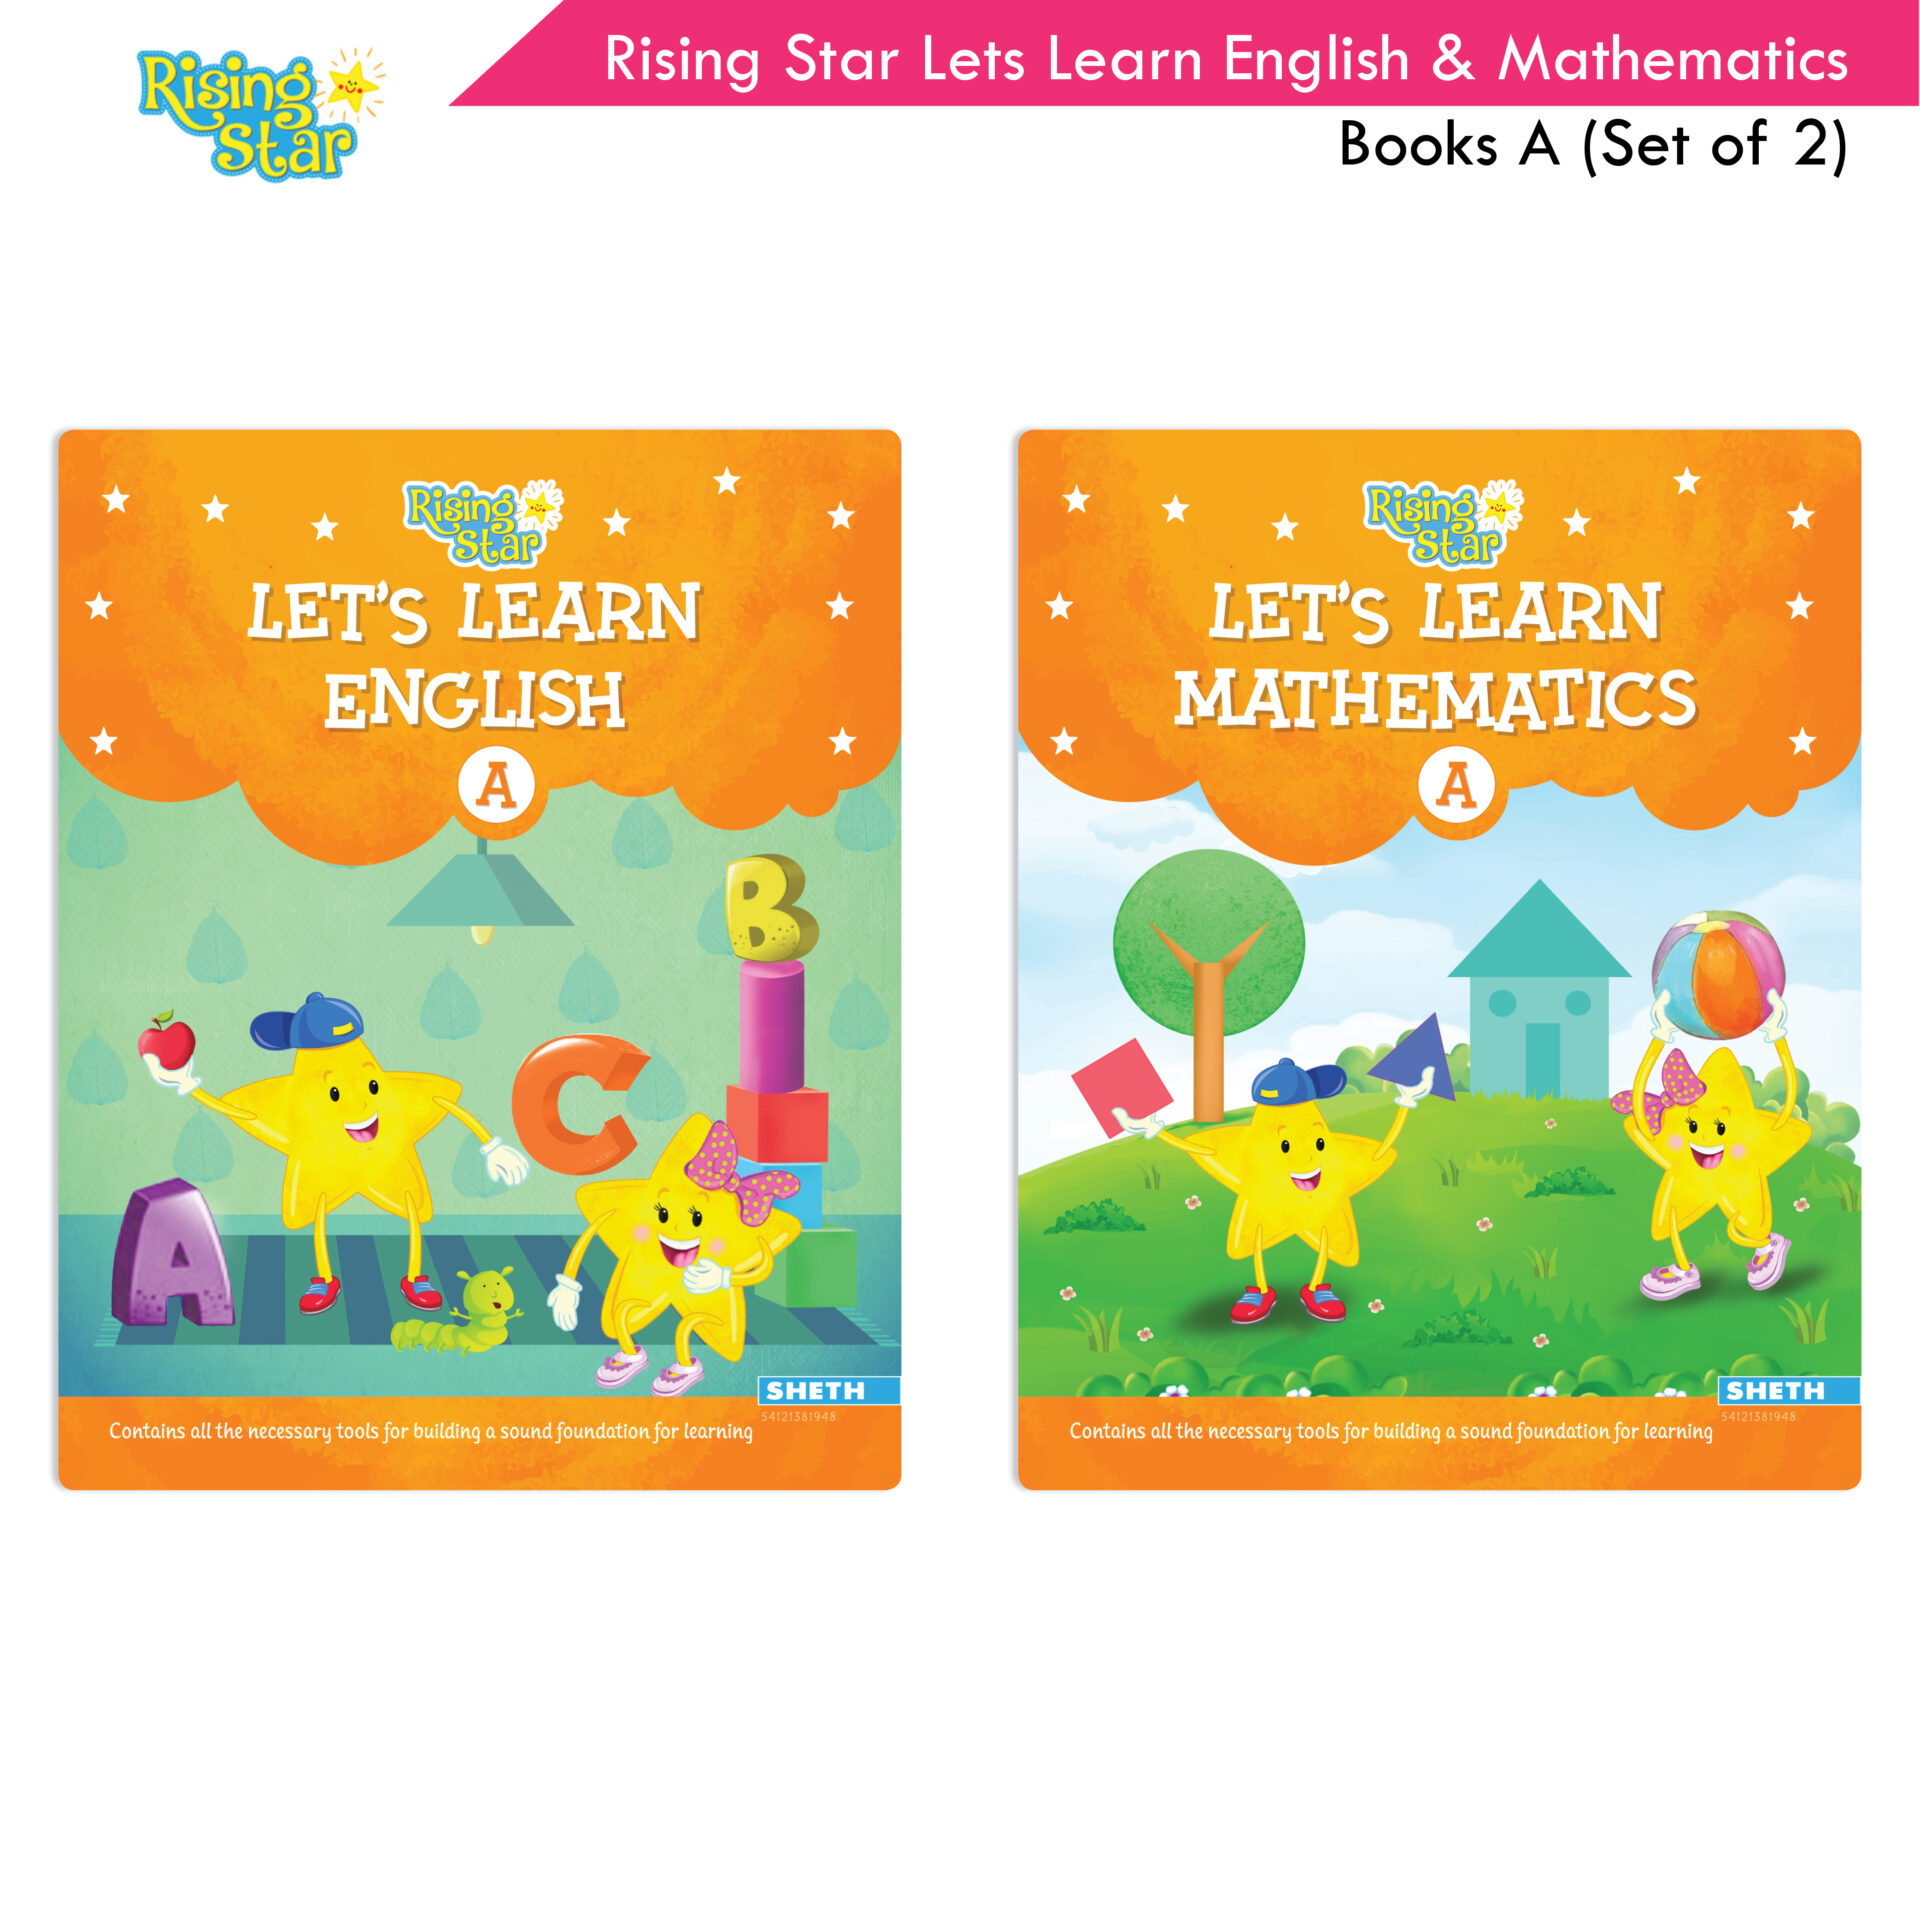 Rising Star Lets Learn English and Mathematics Books A Set of 2 1